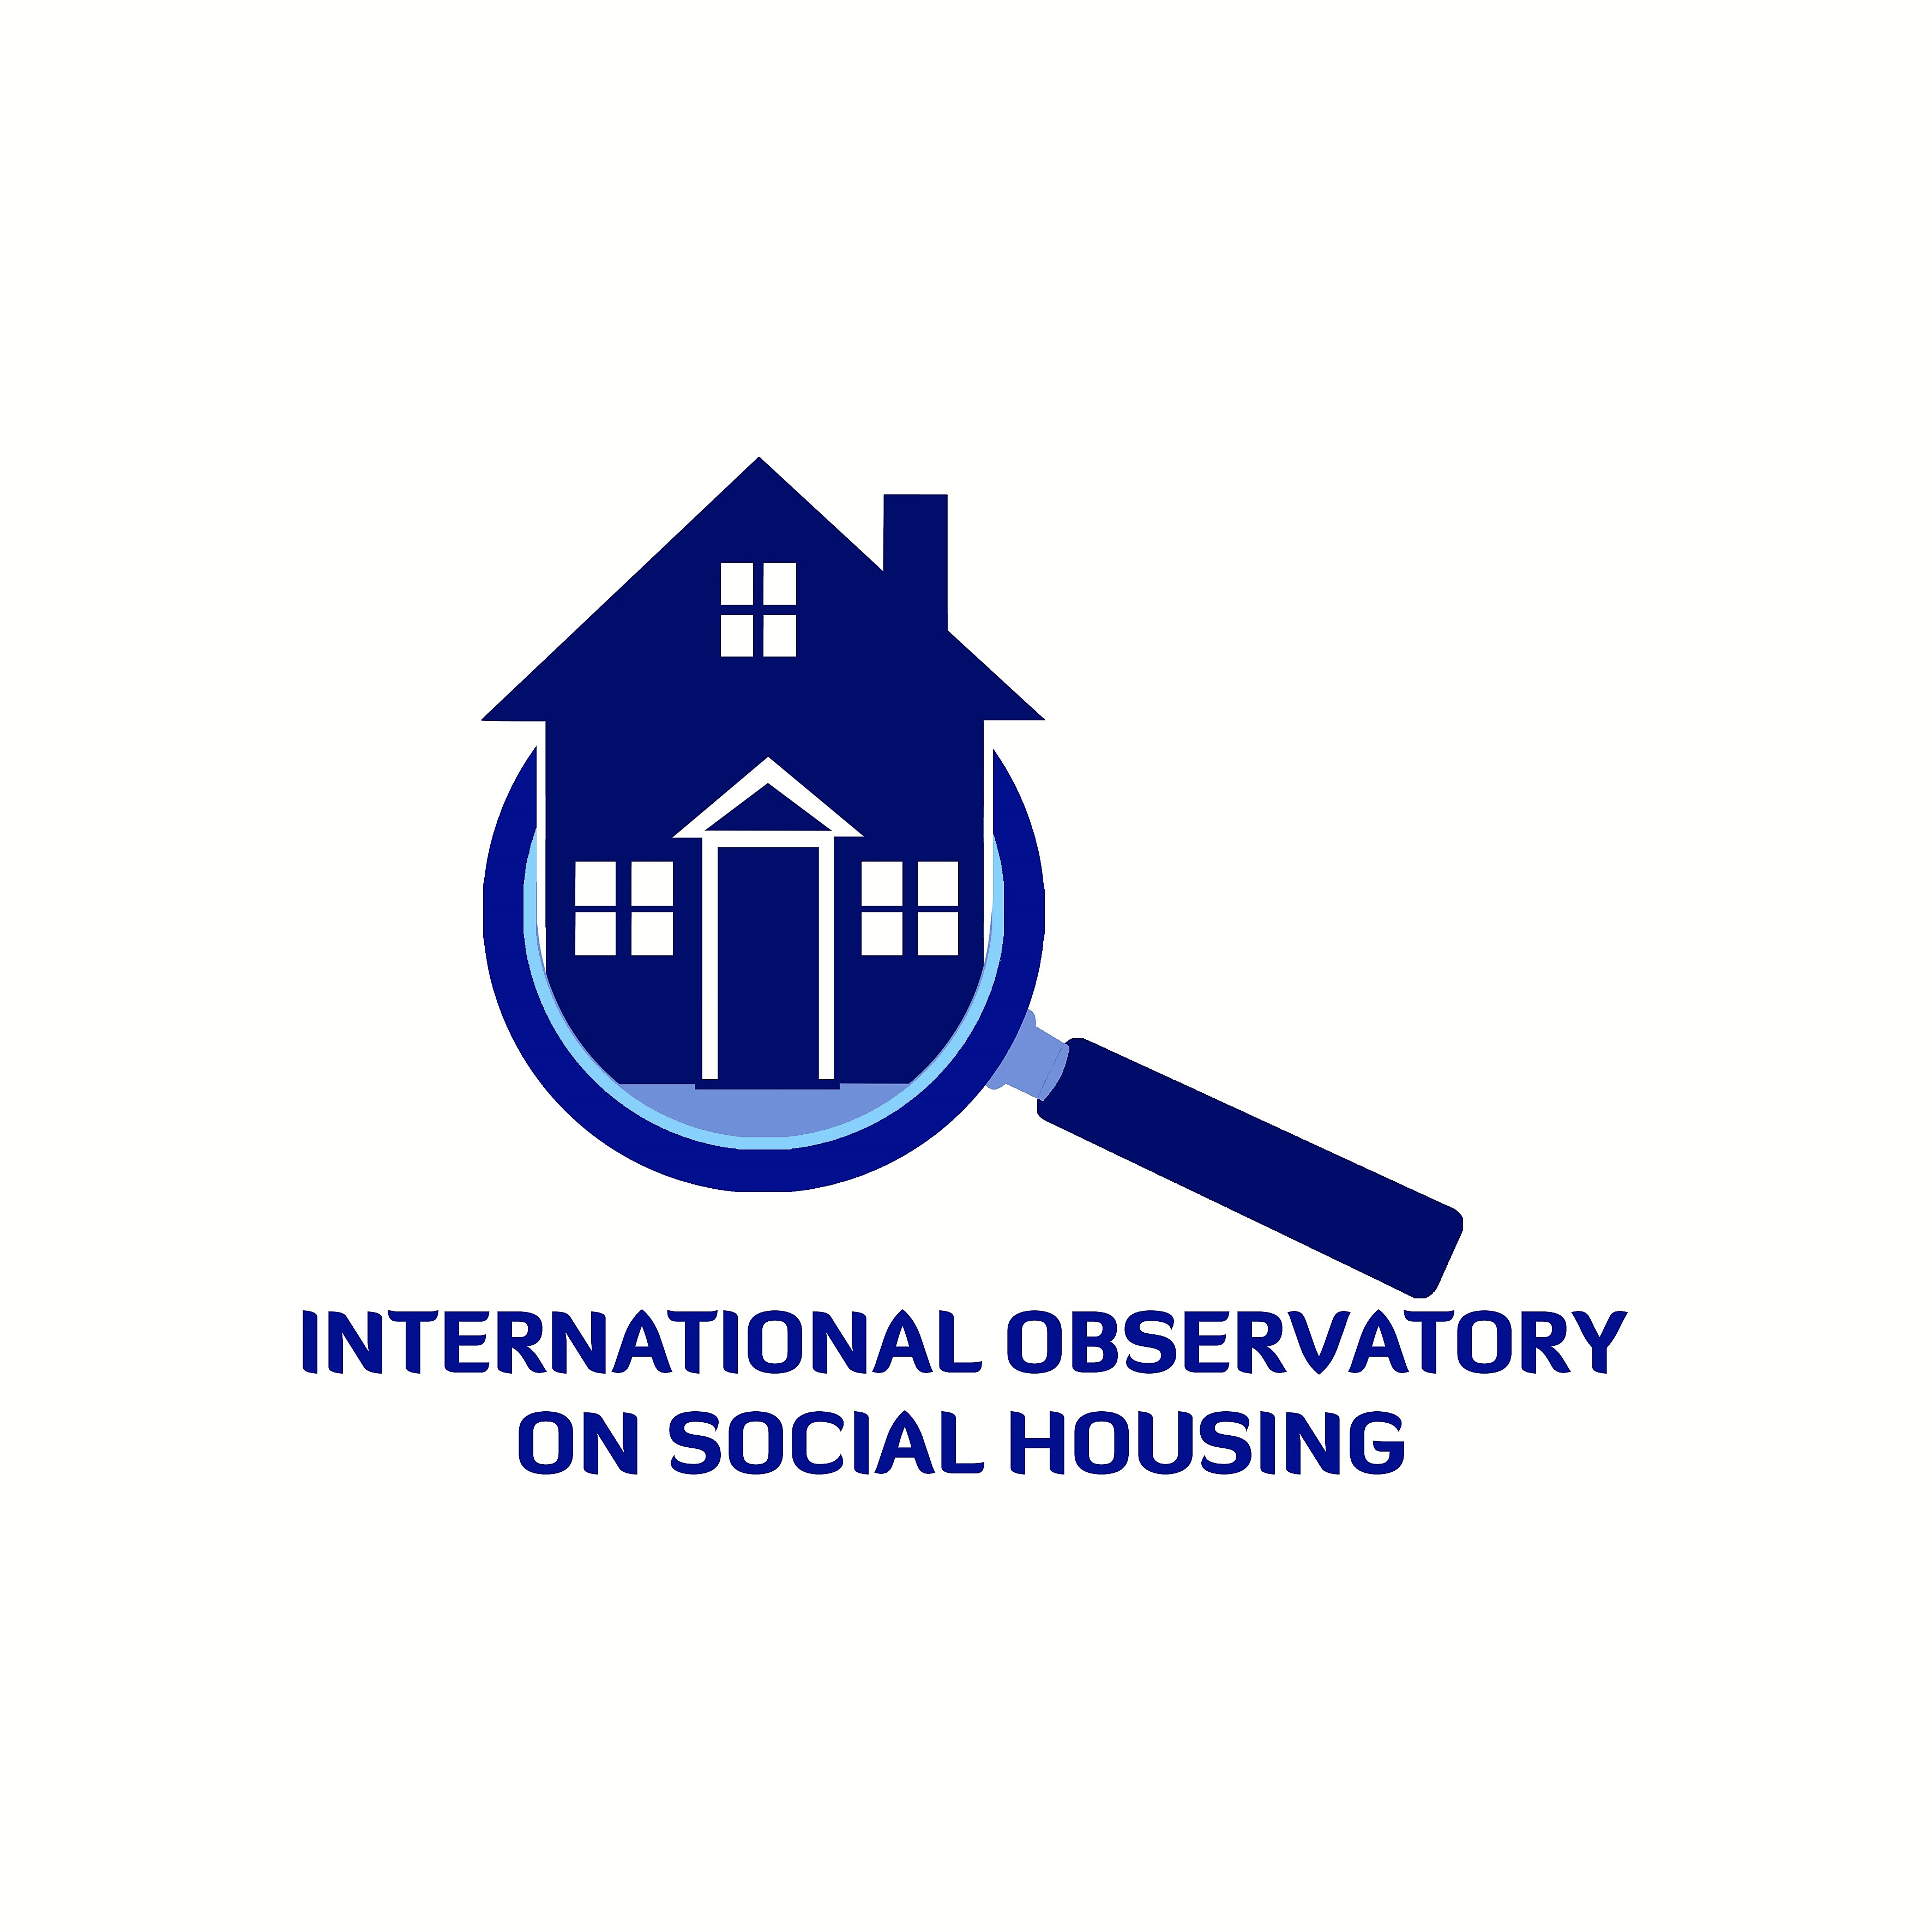 International Observatory on Social Housing